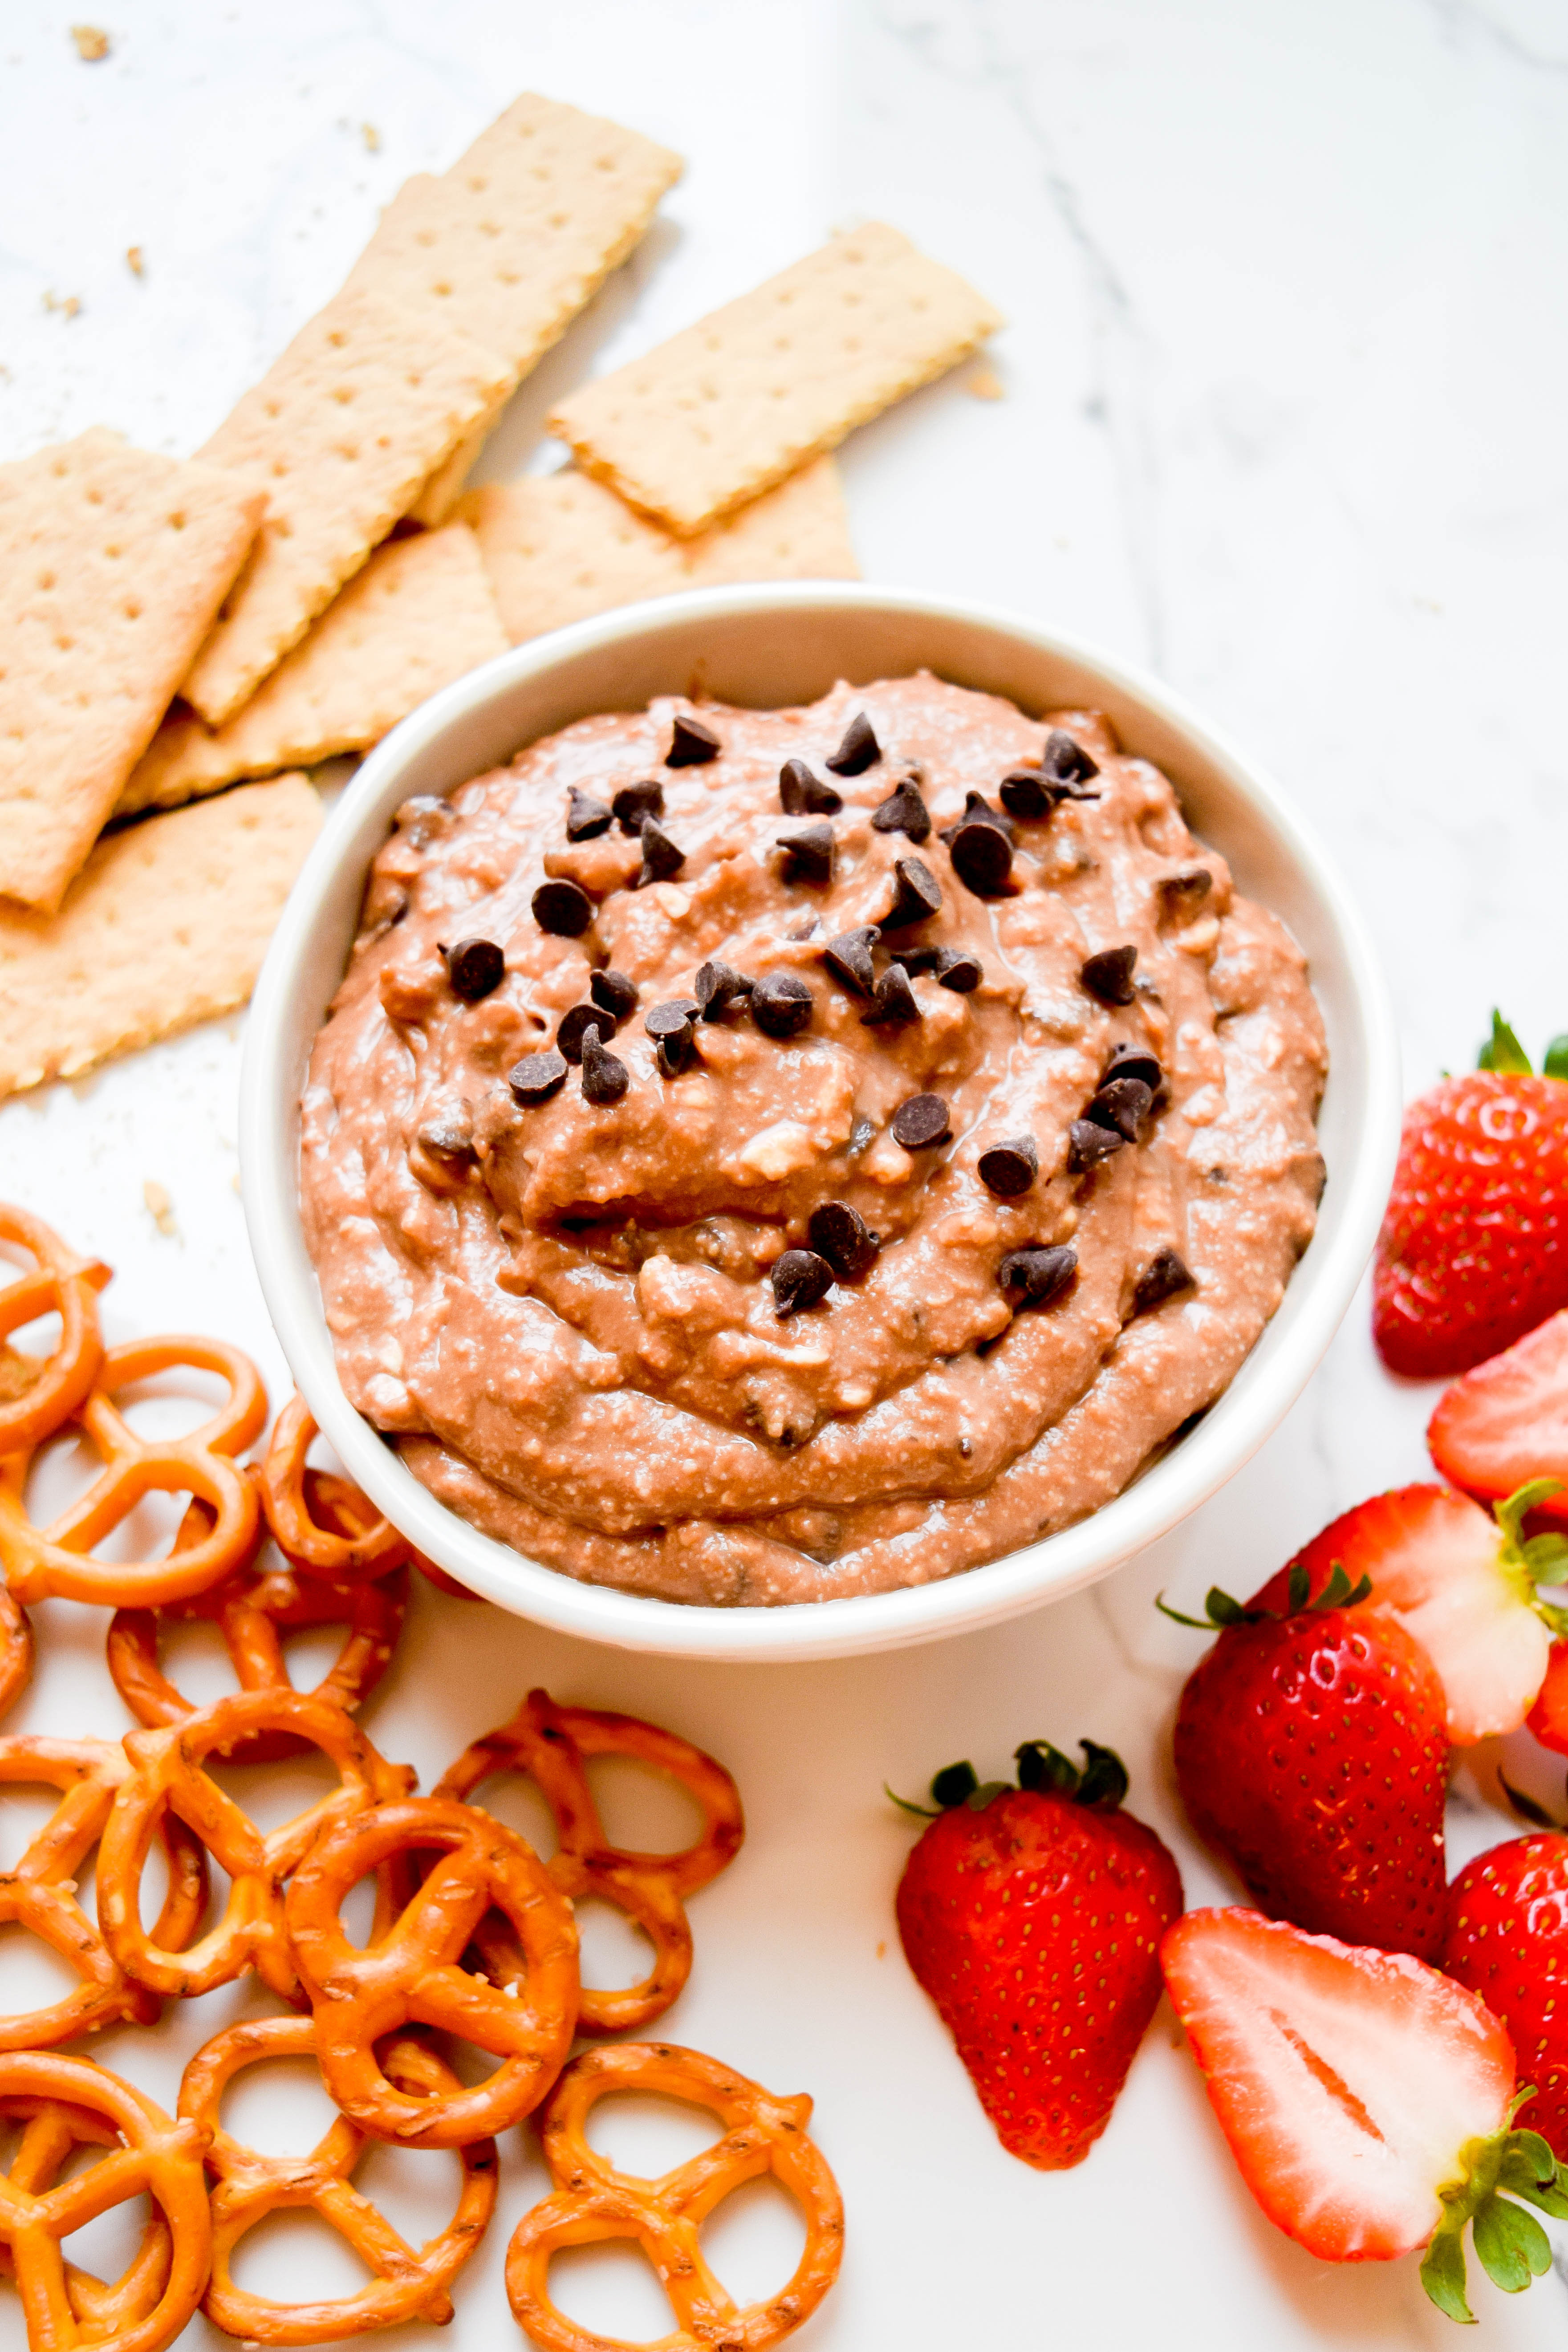 Hazelnut Cannoli Dip and strawberries, pretzels and graham crackers for dipping.